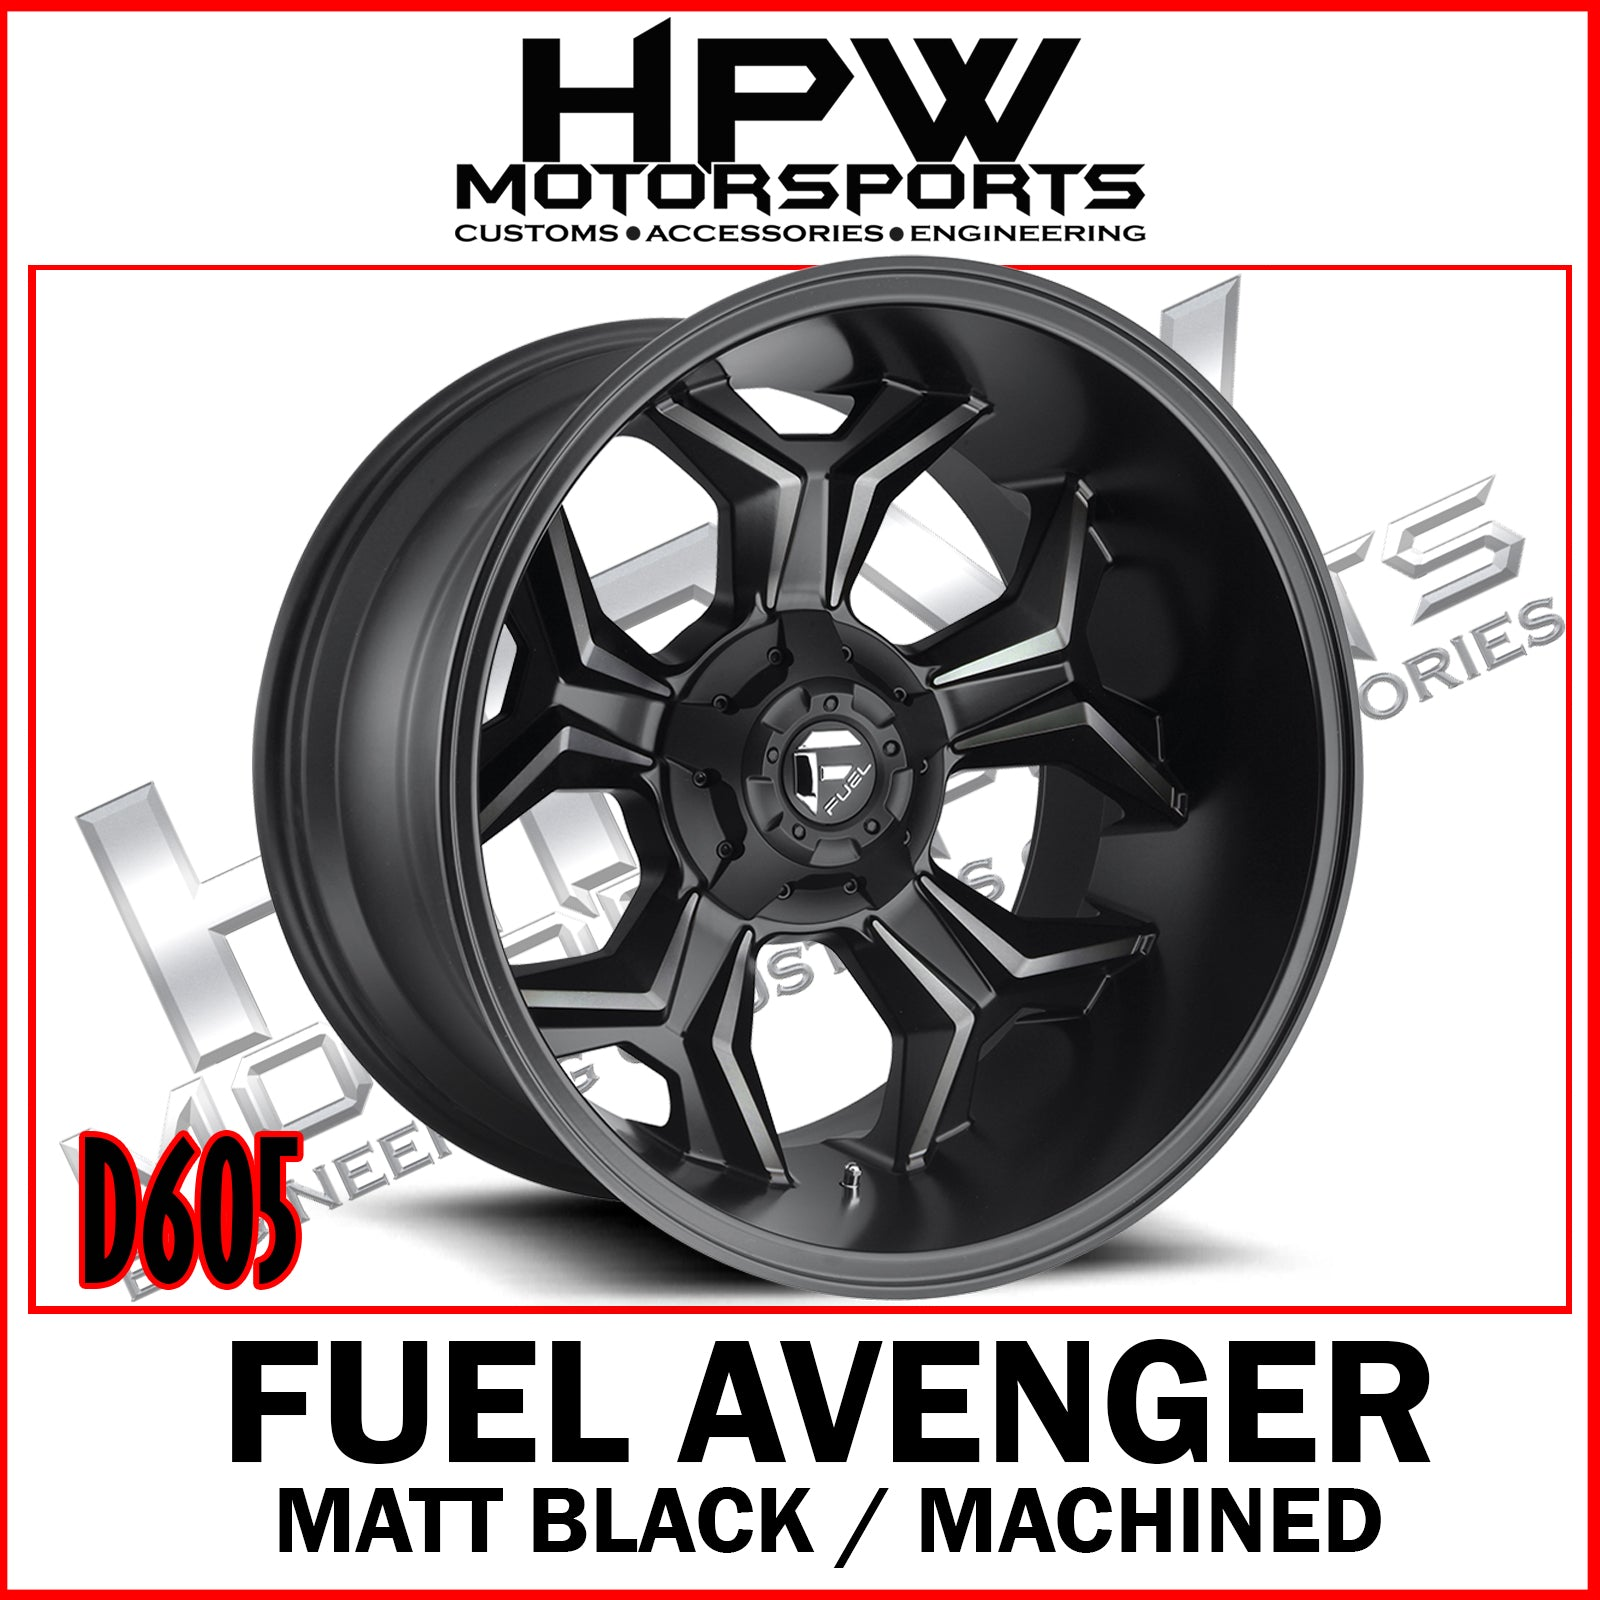 (20x12 -44) D605 FUEL AVENGER - MATT BLACK & MACHINED - Set of 4